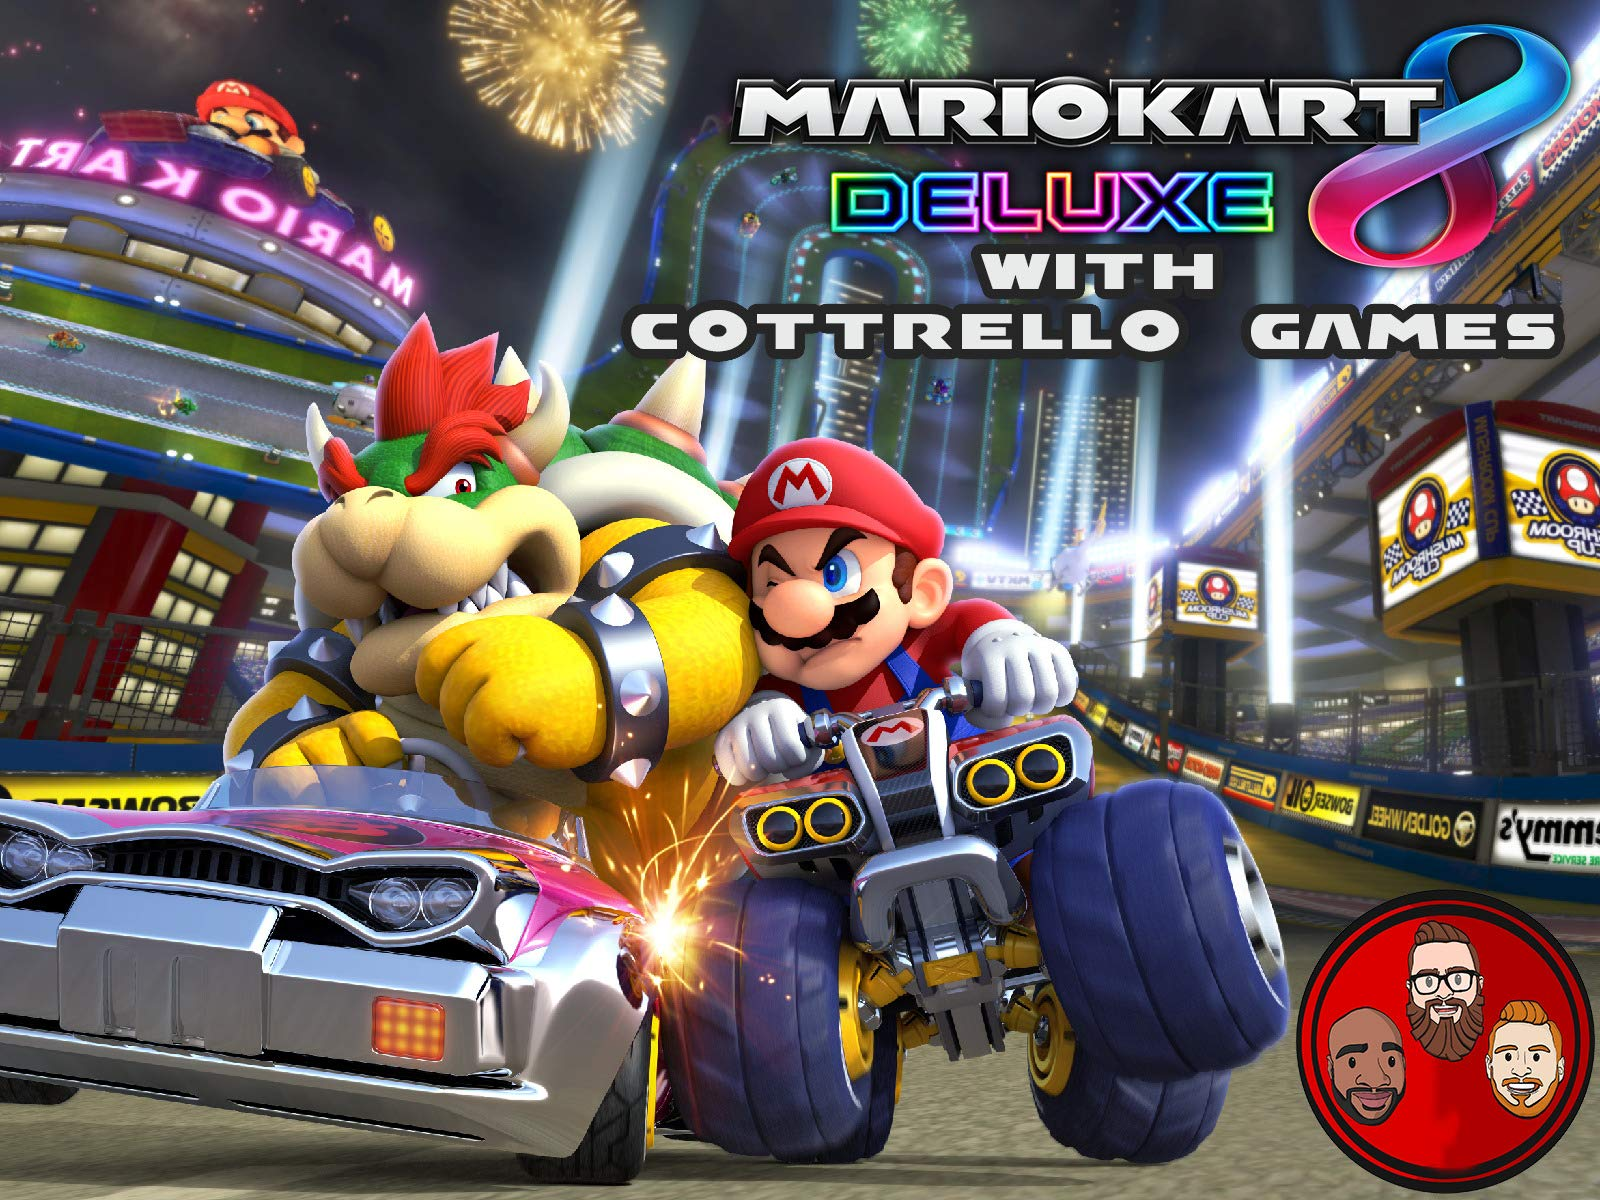 Mario Kart 8 Deluxe with Cottrello Games